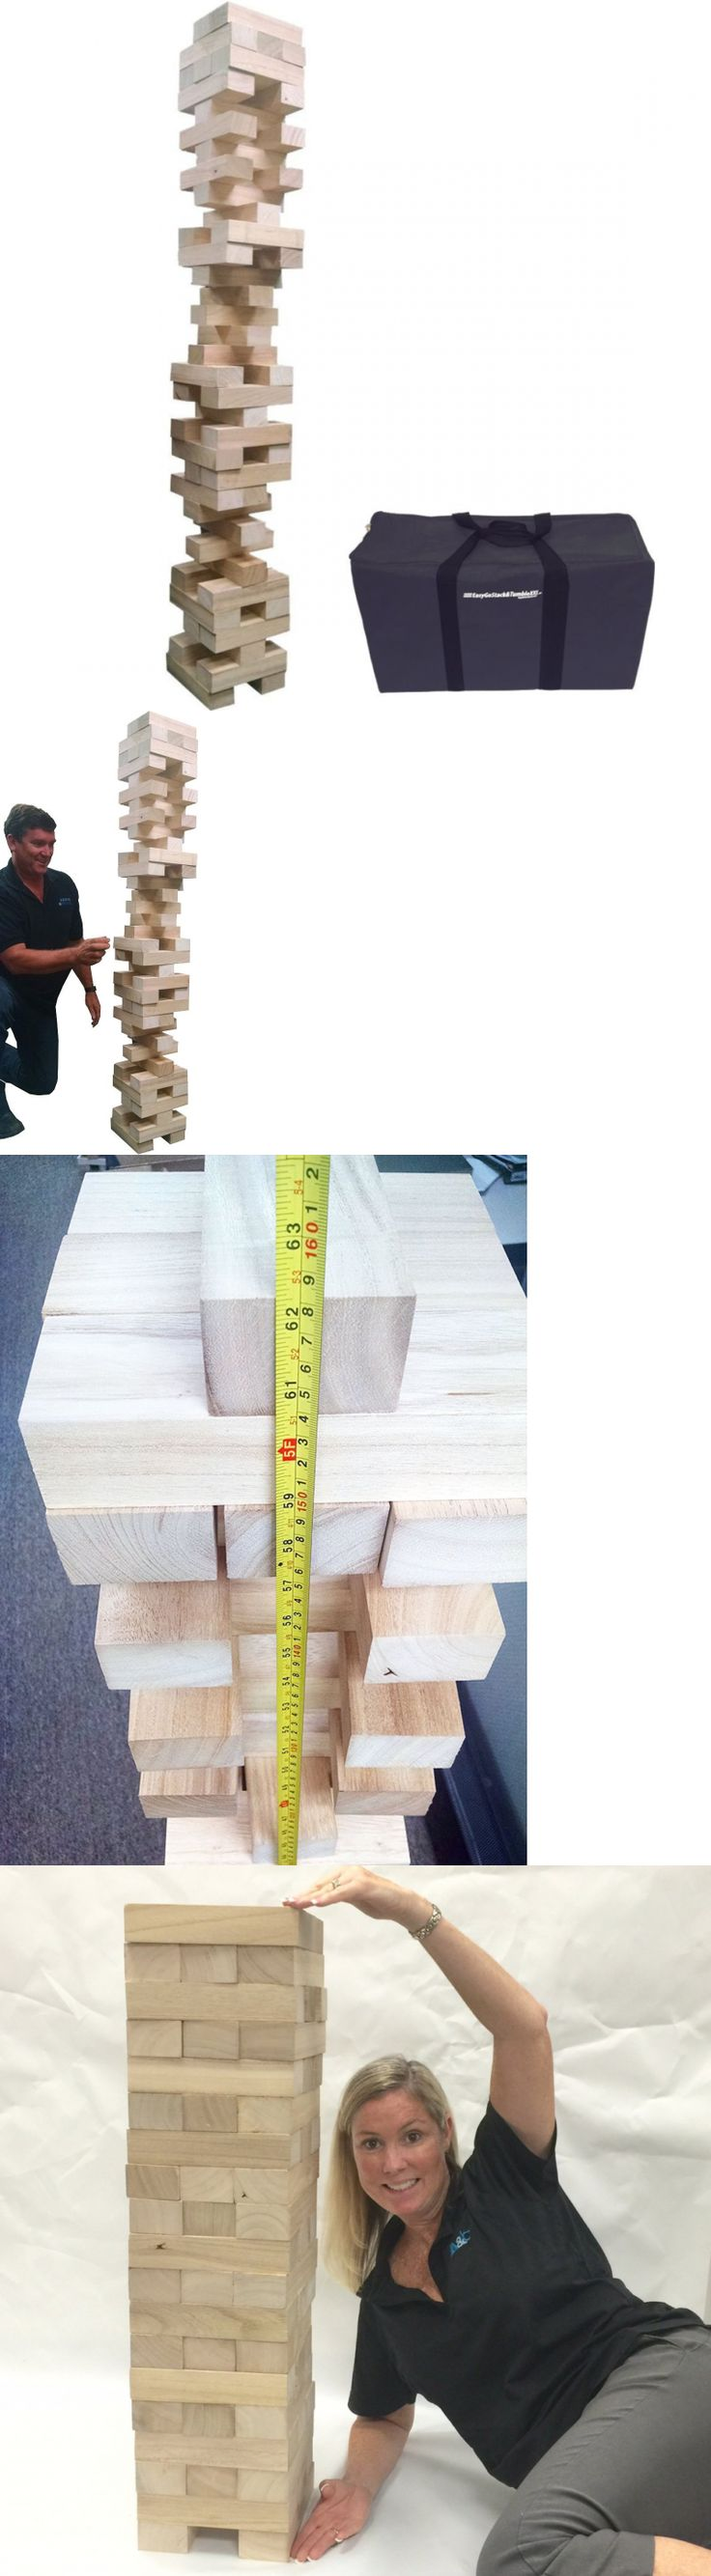 Wooden and Handcrafted Toys 1197: Easygo Giant Stack And Tumble Giant Wood Stacking And Tumble Tower Blocks Game Inclu -> BUY IT NOW ONLY: $86.73 on eBay!